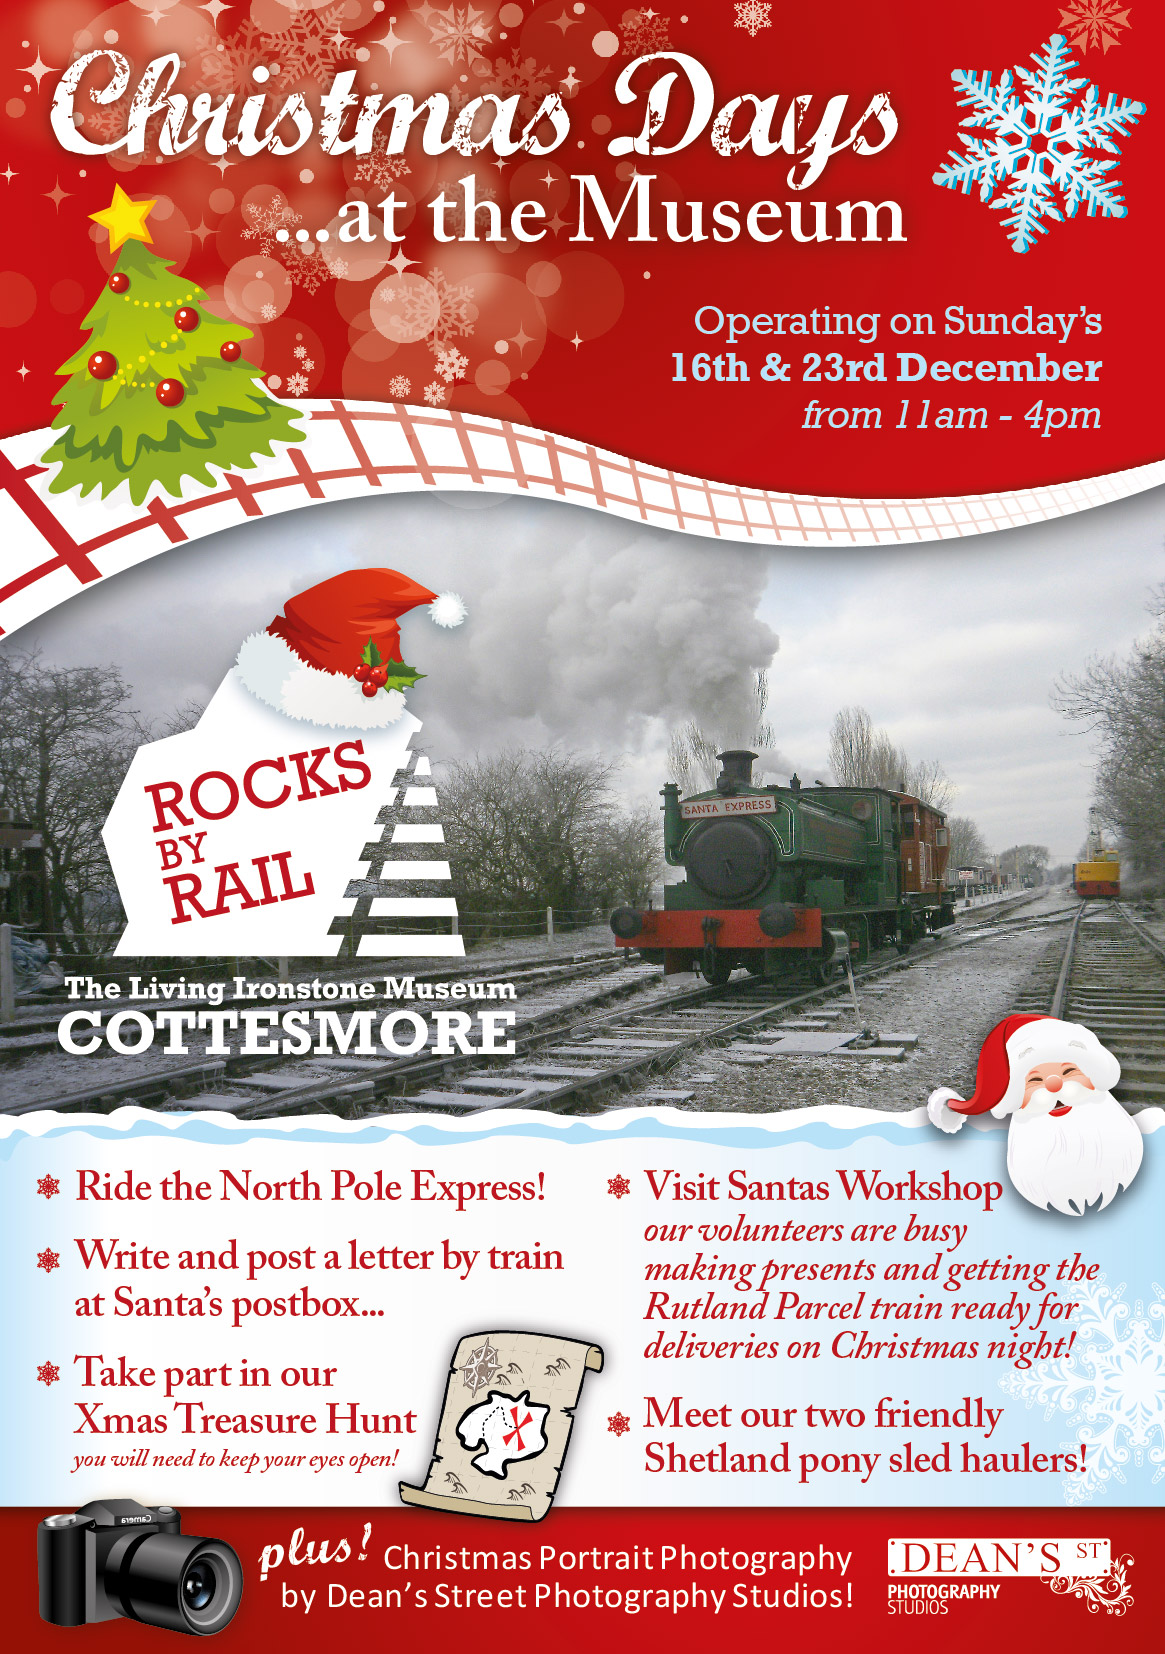 rbr a5 xmas flyer v4 01 rocks by rail rbr a5 xmas flyer v4 01